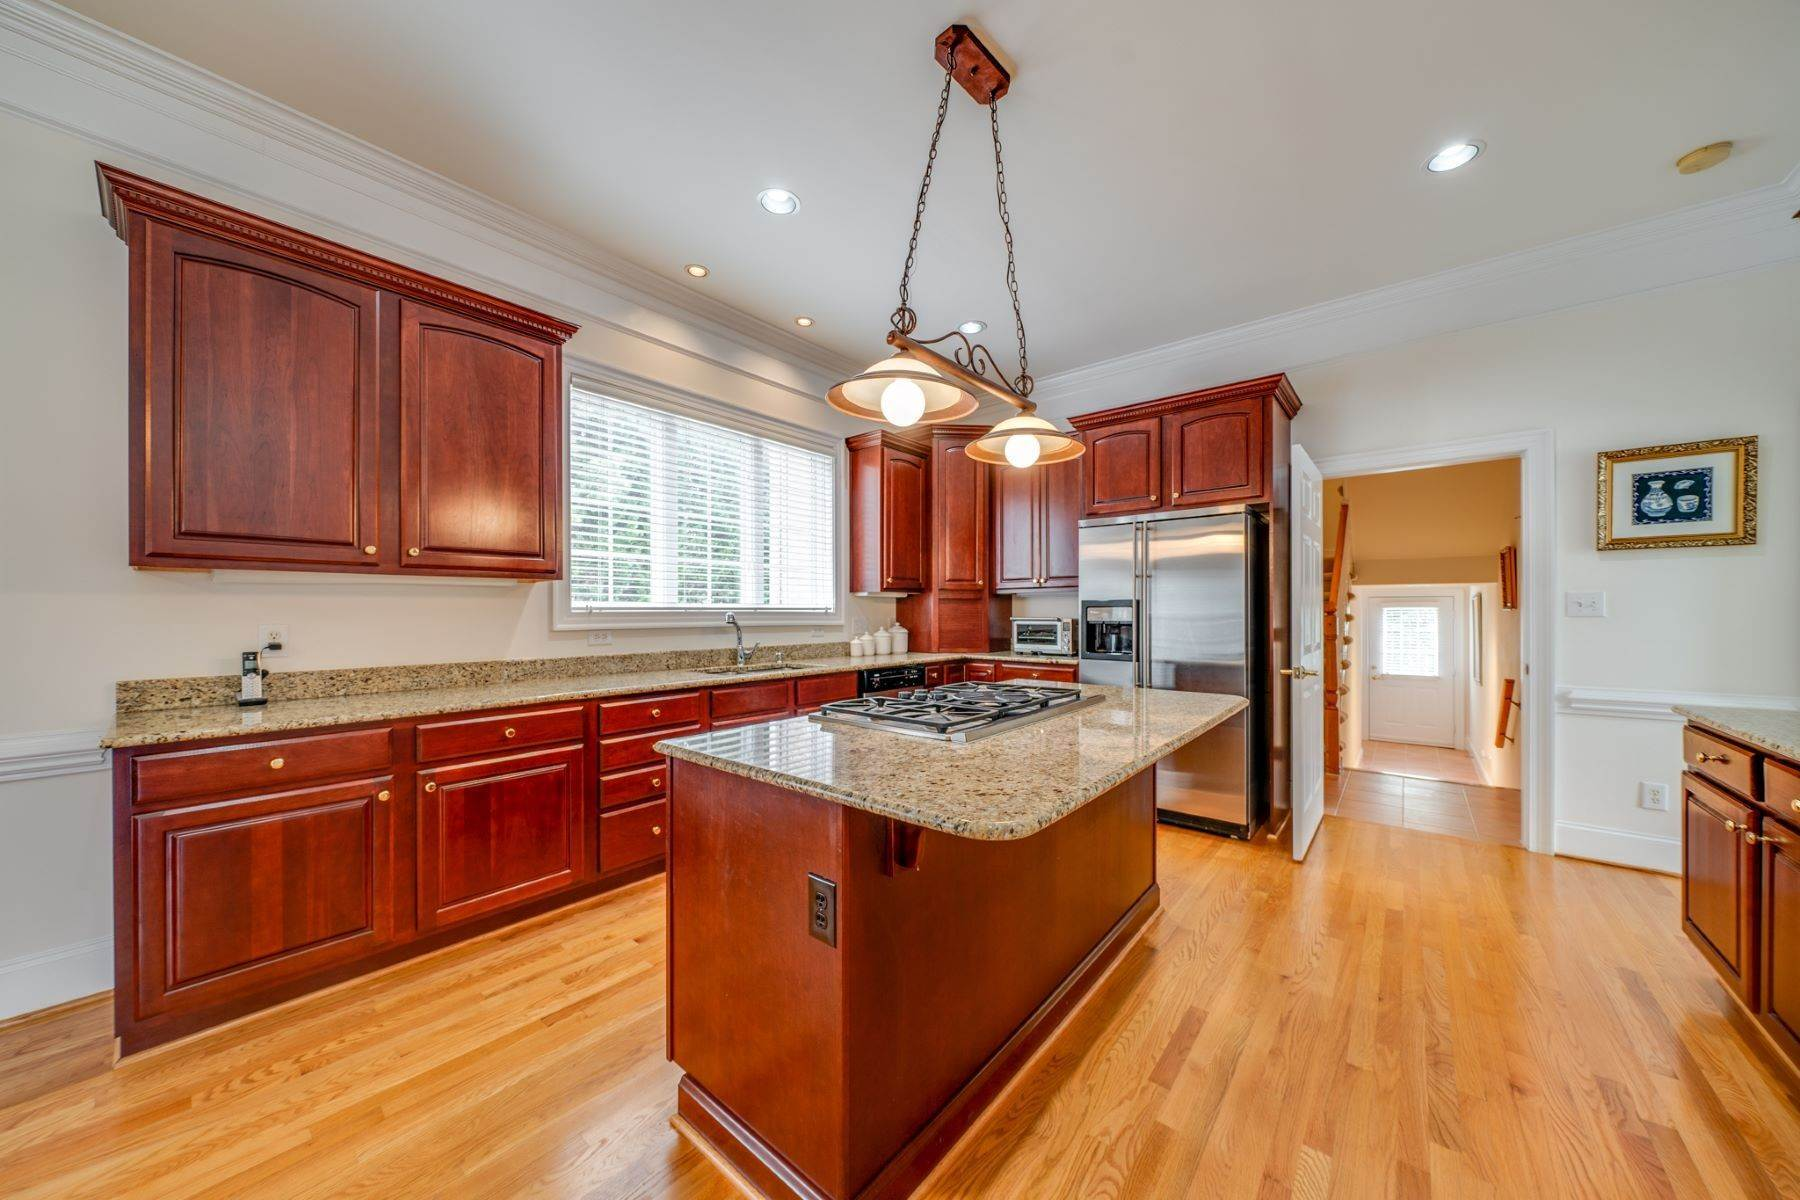 8. Single Family Homes for Sale at 106 Michelin Place Cary, North Carolina 27511 United States